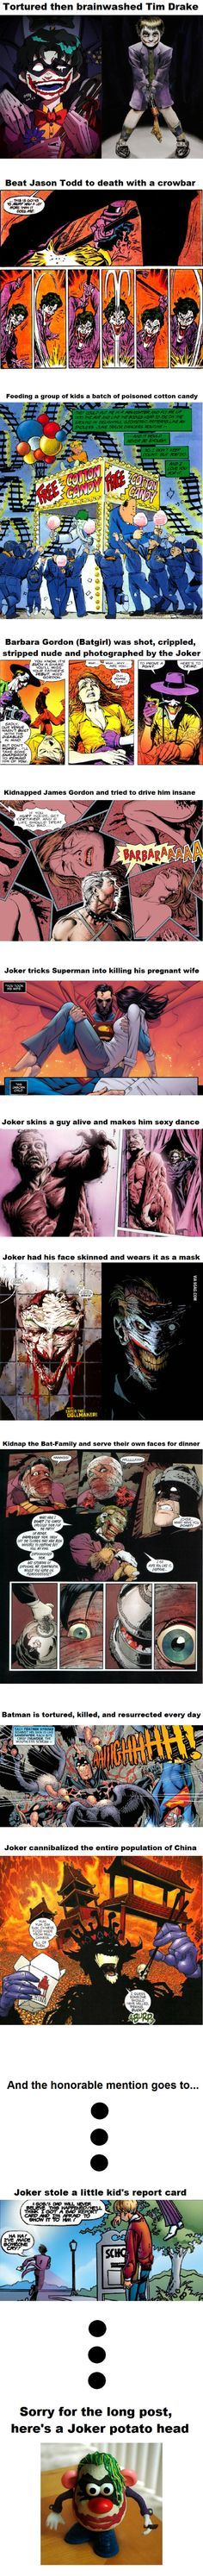 Why the Joker is one of the most messed up villains of all time. - 9GAG